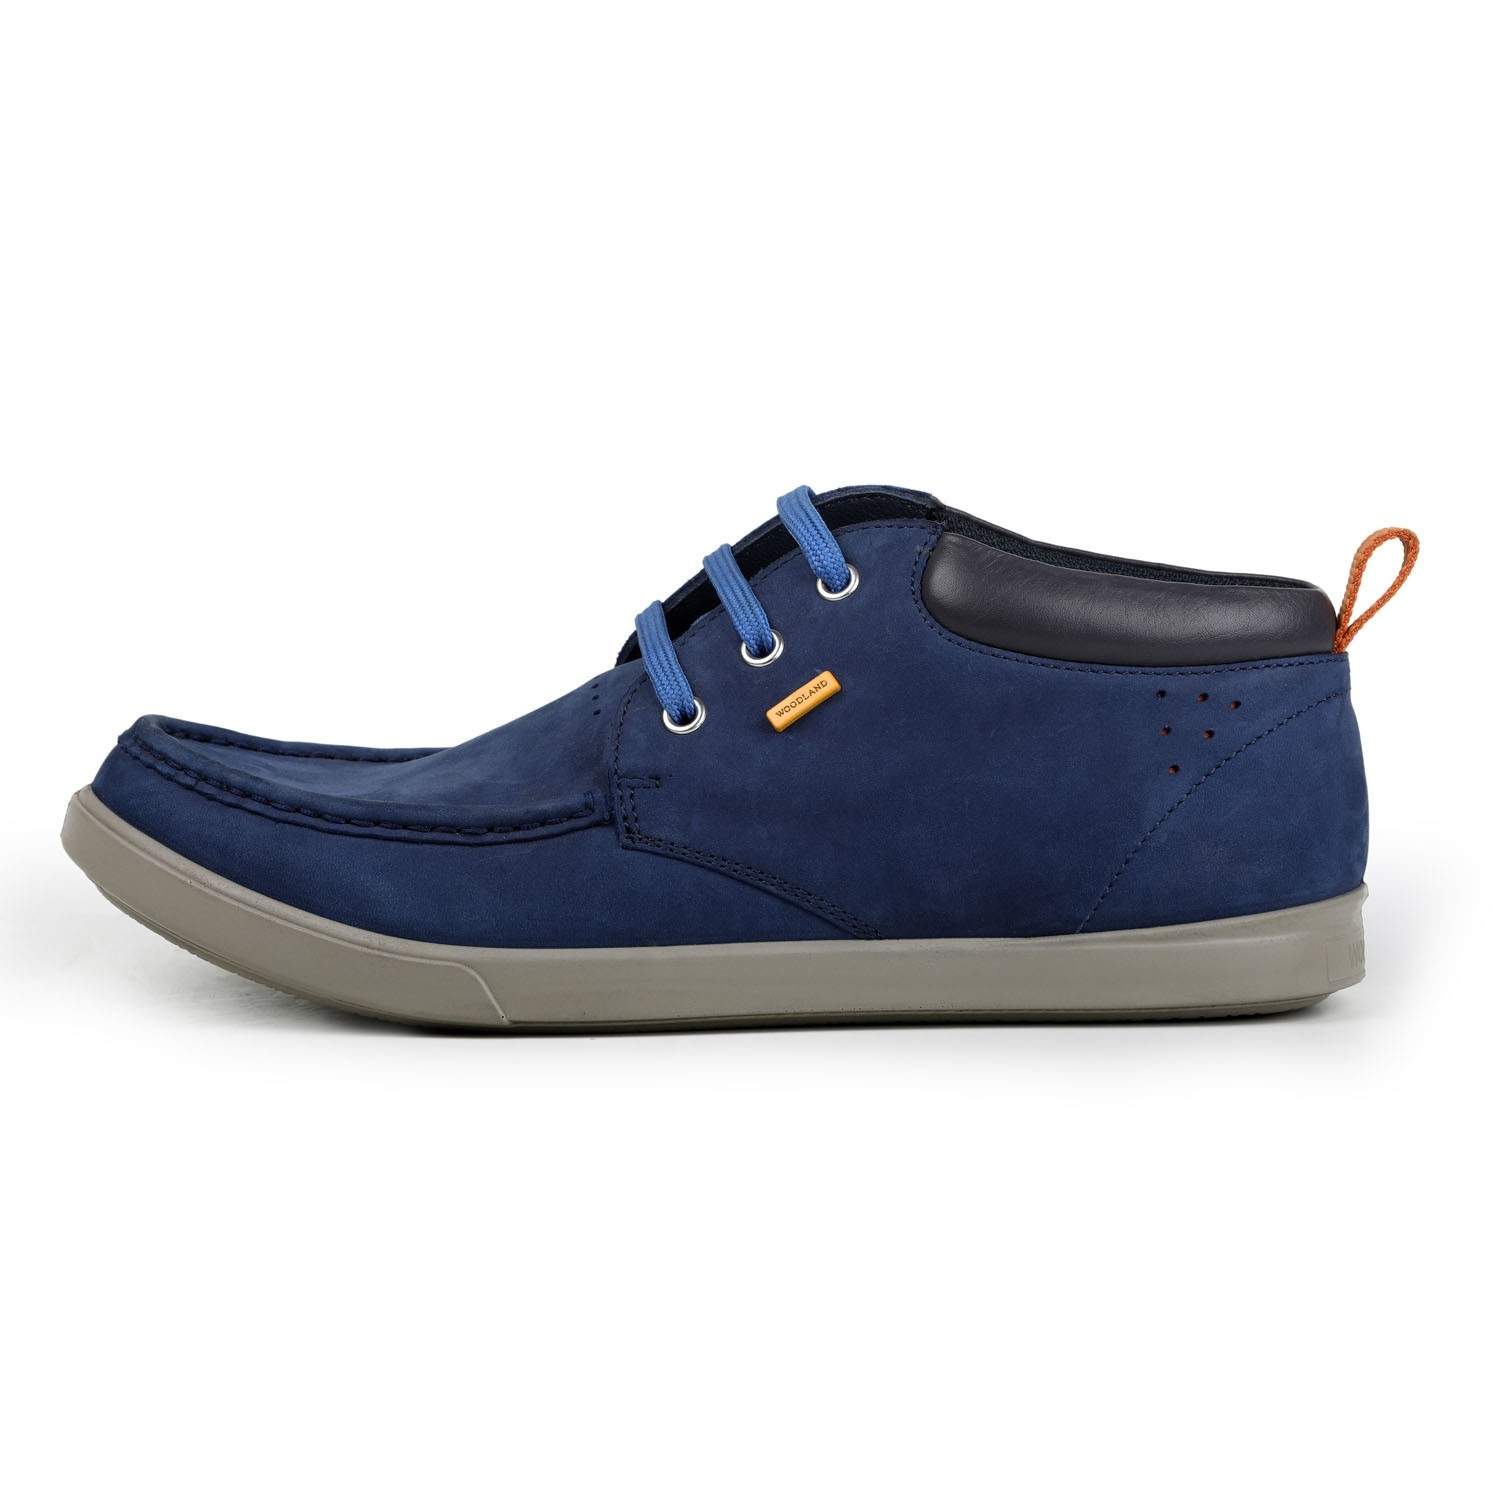 With Casual Shoes Add Style to Your Regular Look